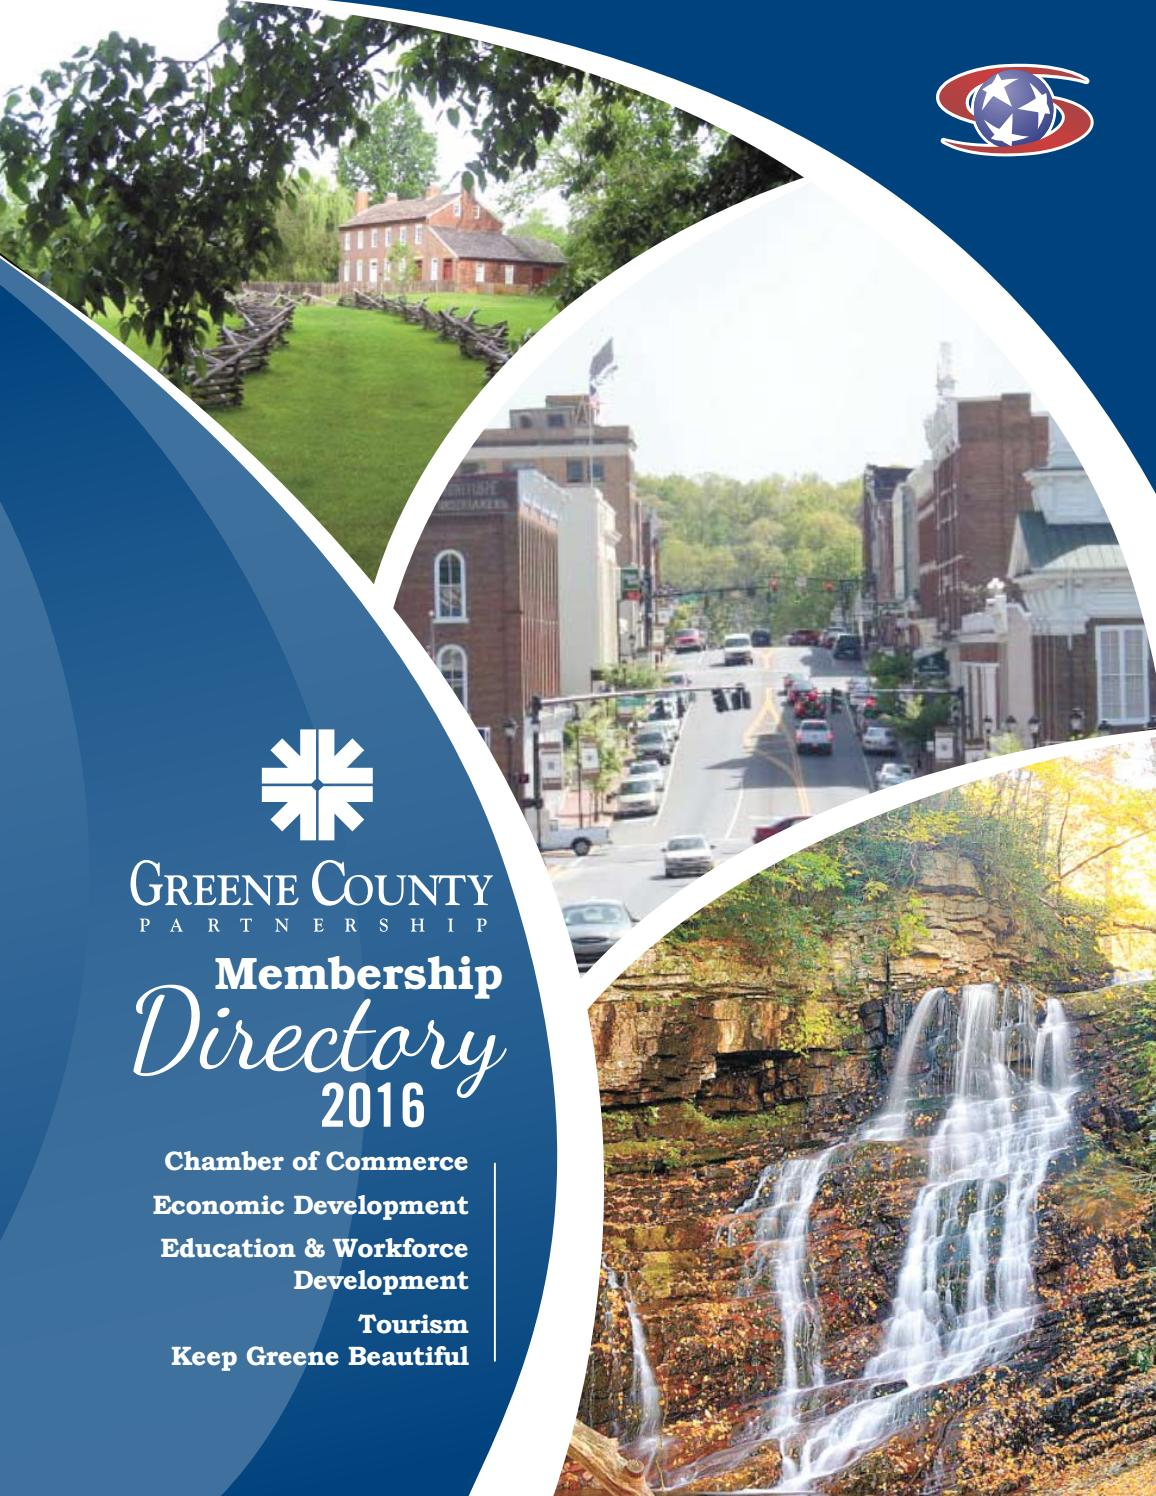 Greene County Partnership Directory 2016 by The Greeneville